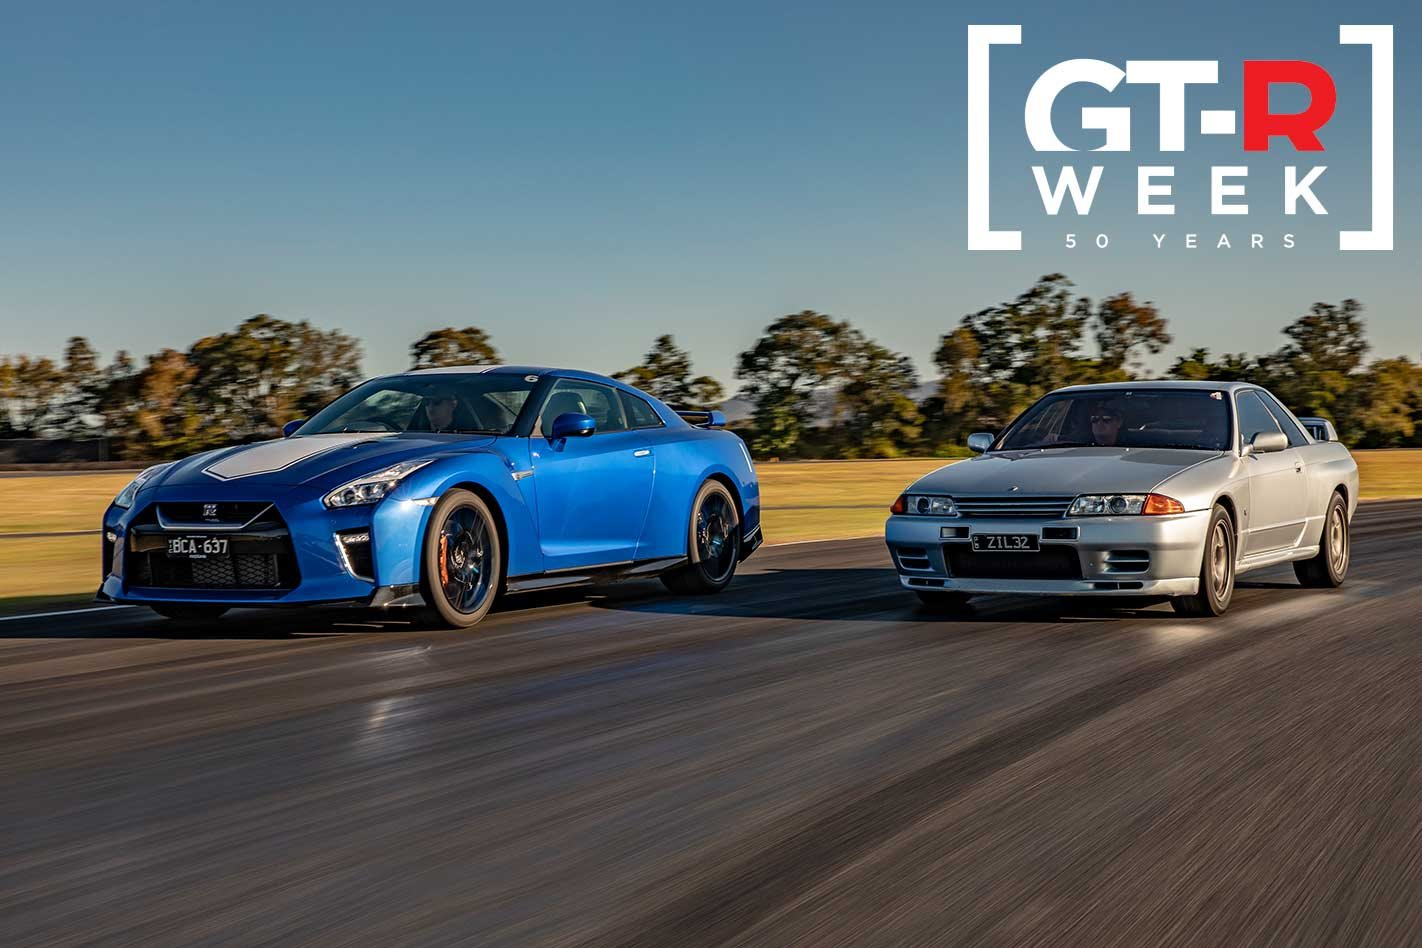 Nissan GT-R generations driven: 50 years of Nissan GT-R